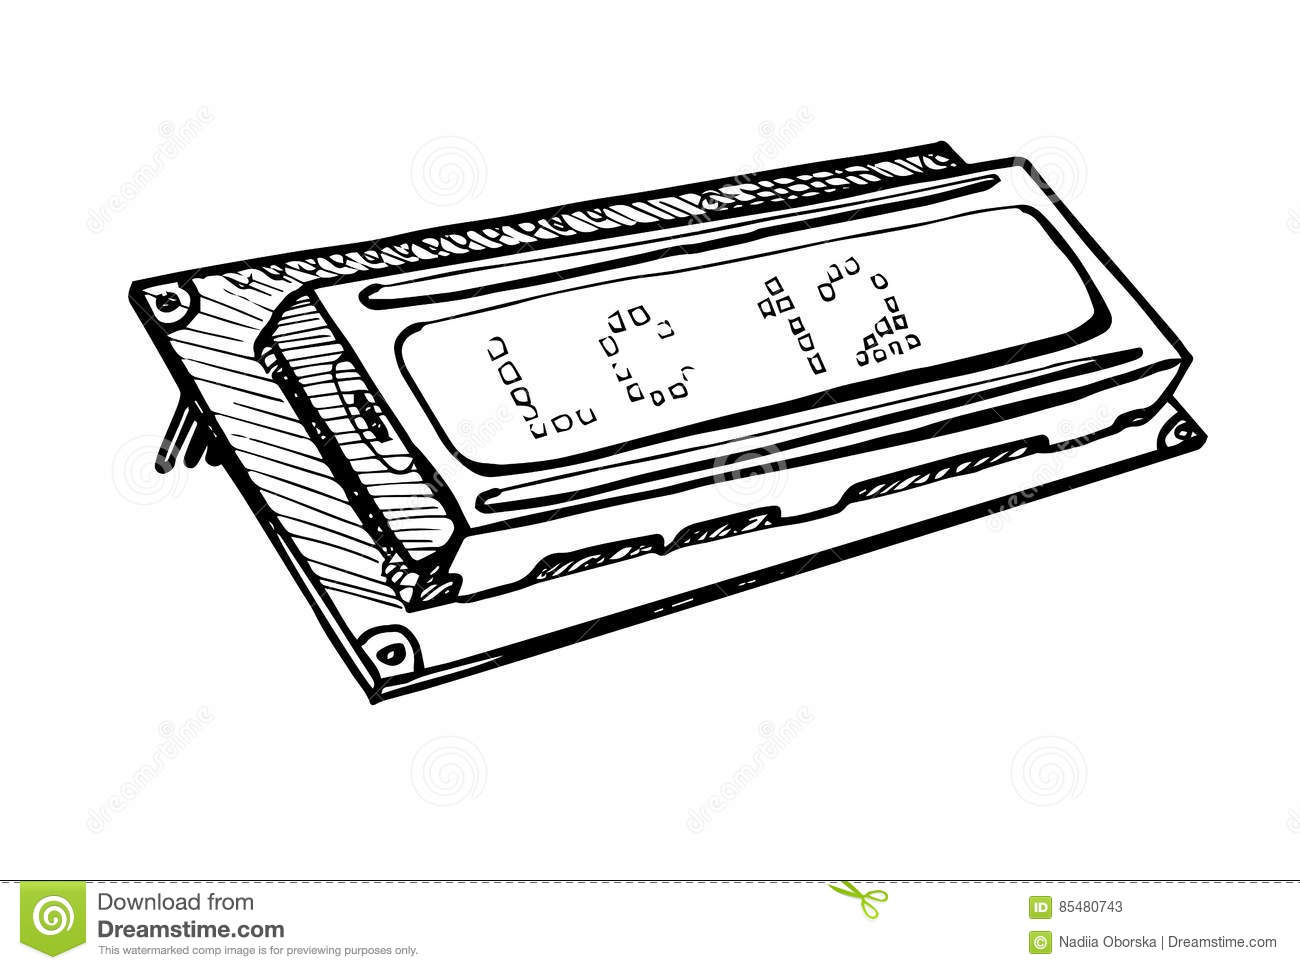 lcd display module isolated on white background  vector illustration in a sketch style  stock